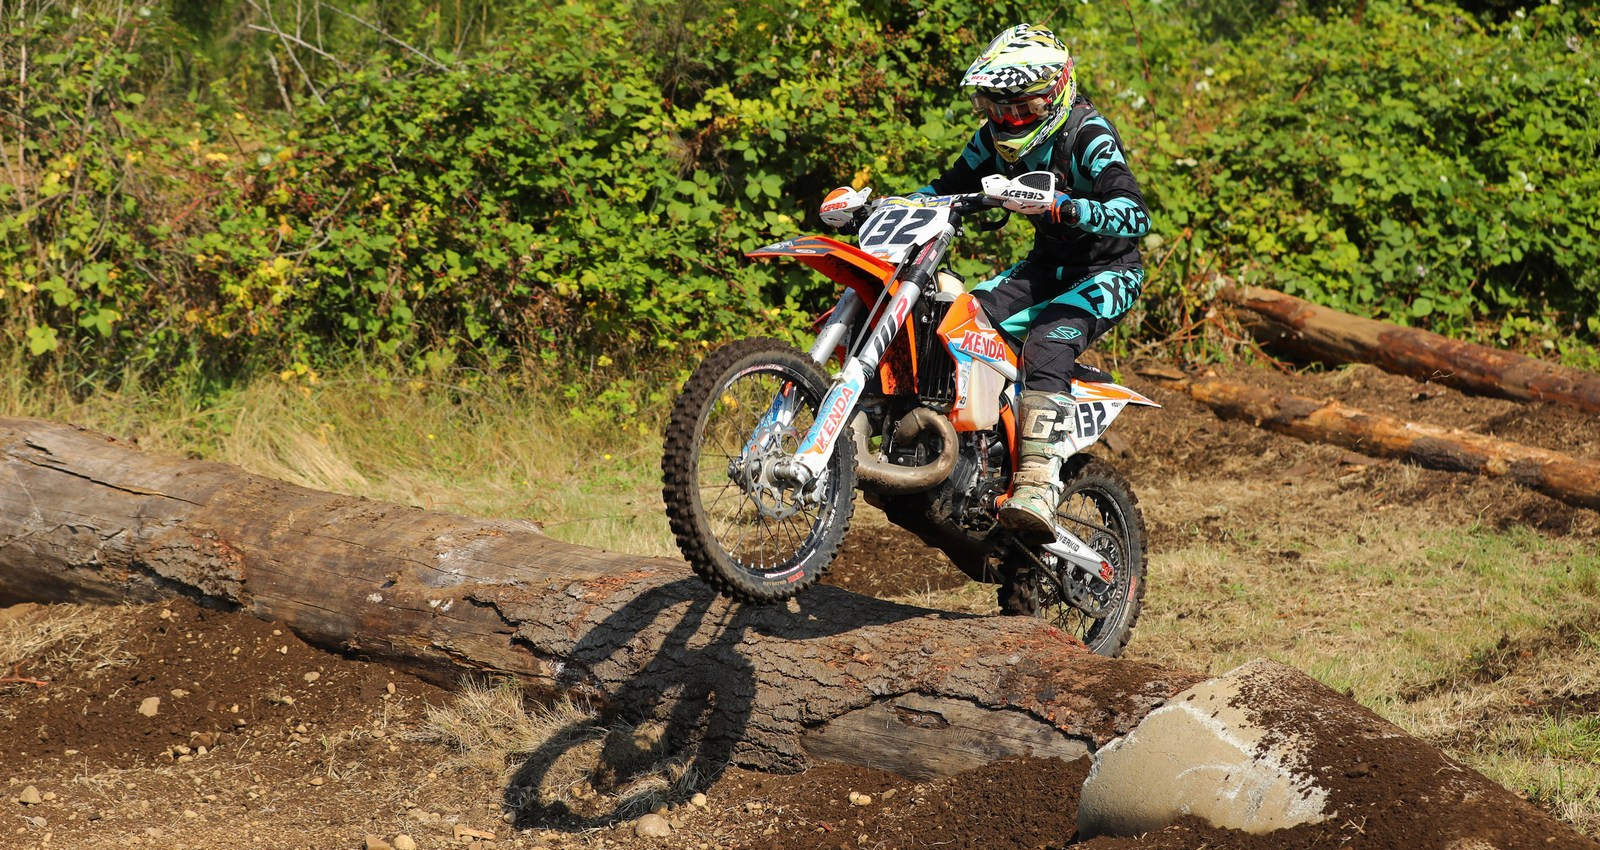 2019-08-seven-diaz-bike-worcs-racing